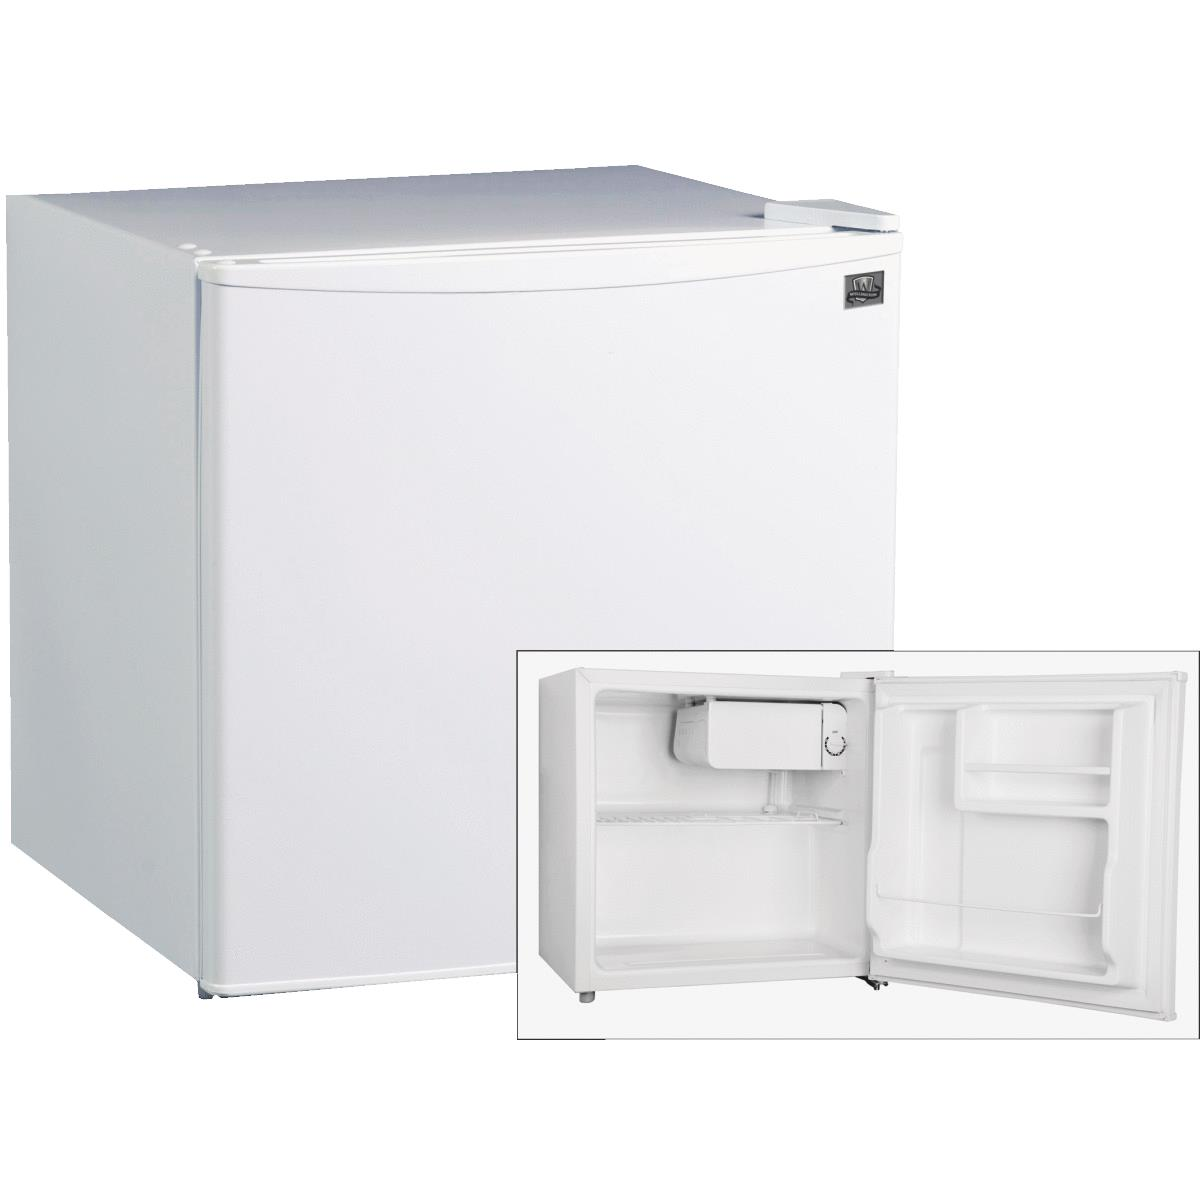 Perfect Aire 1.7 Cu. Ft. Compact Refrigerator